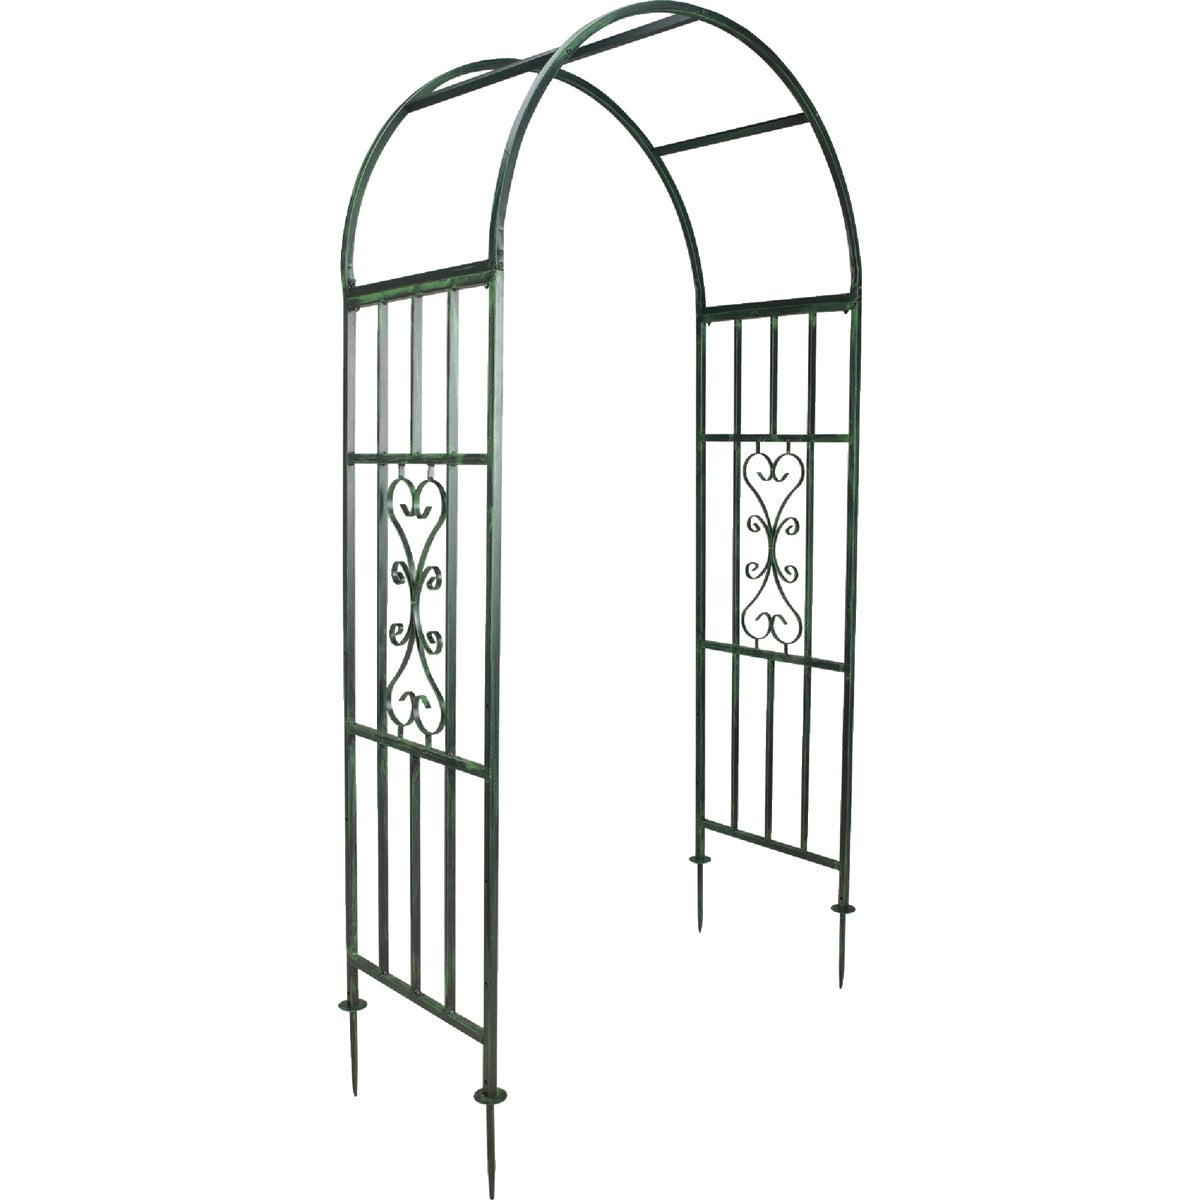 KENSINGTON METAL ARCH - R361 by Gardman Usa Inc